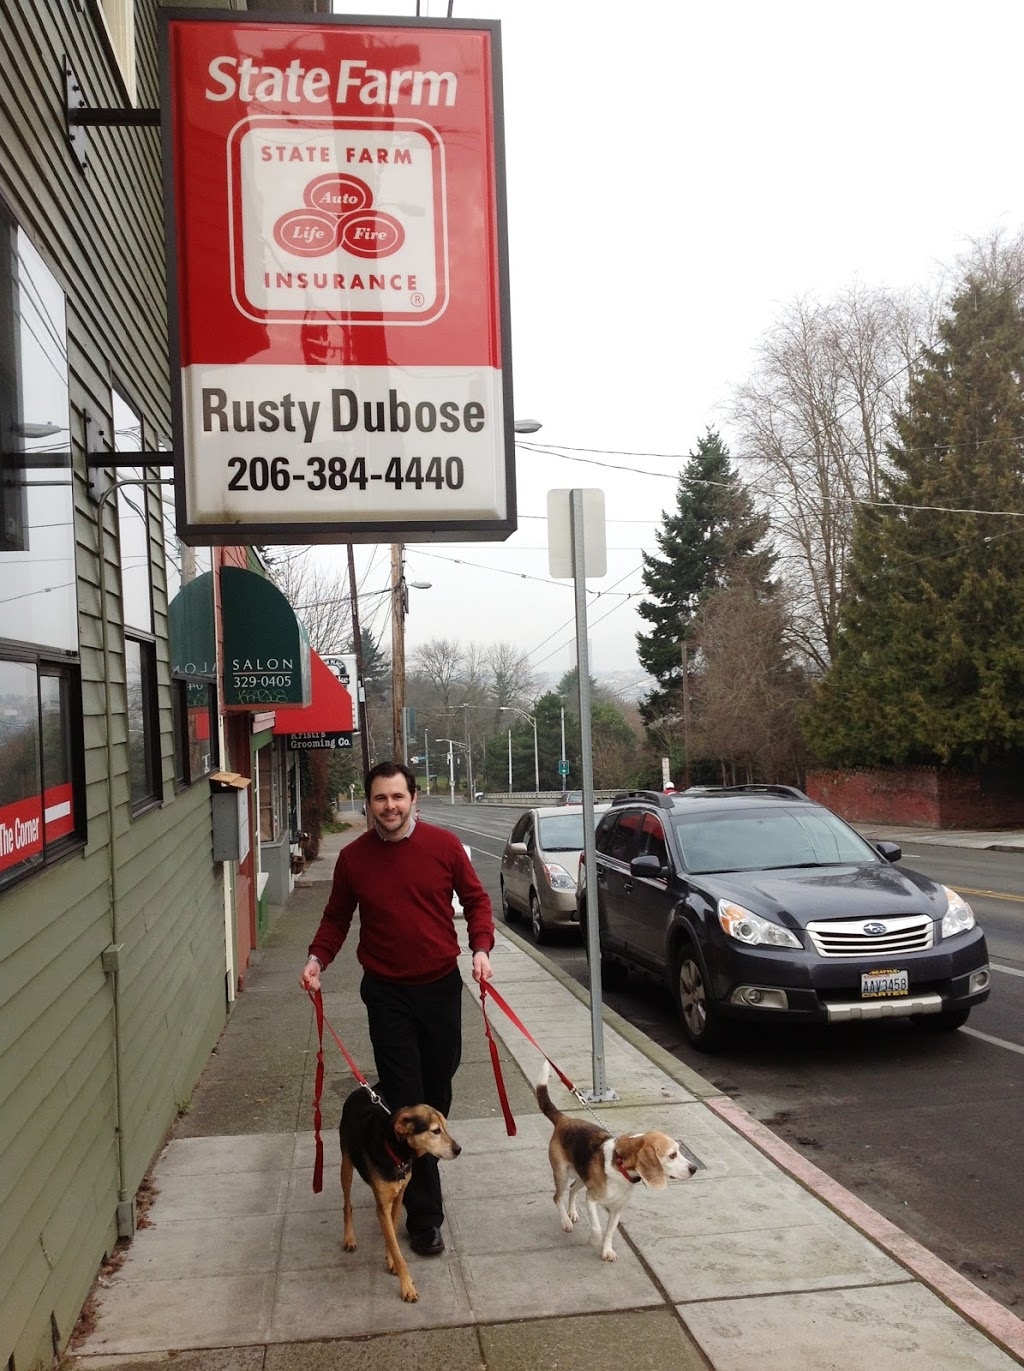 Rusty Dubose - State Farm Insurance Agent | insurance agency | 2633 Eastlake Ave E Ste 206A, Seattle, WA 98102, USA | 2063844440 OR +1 206-384-4440